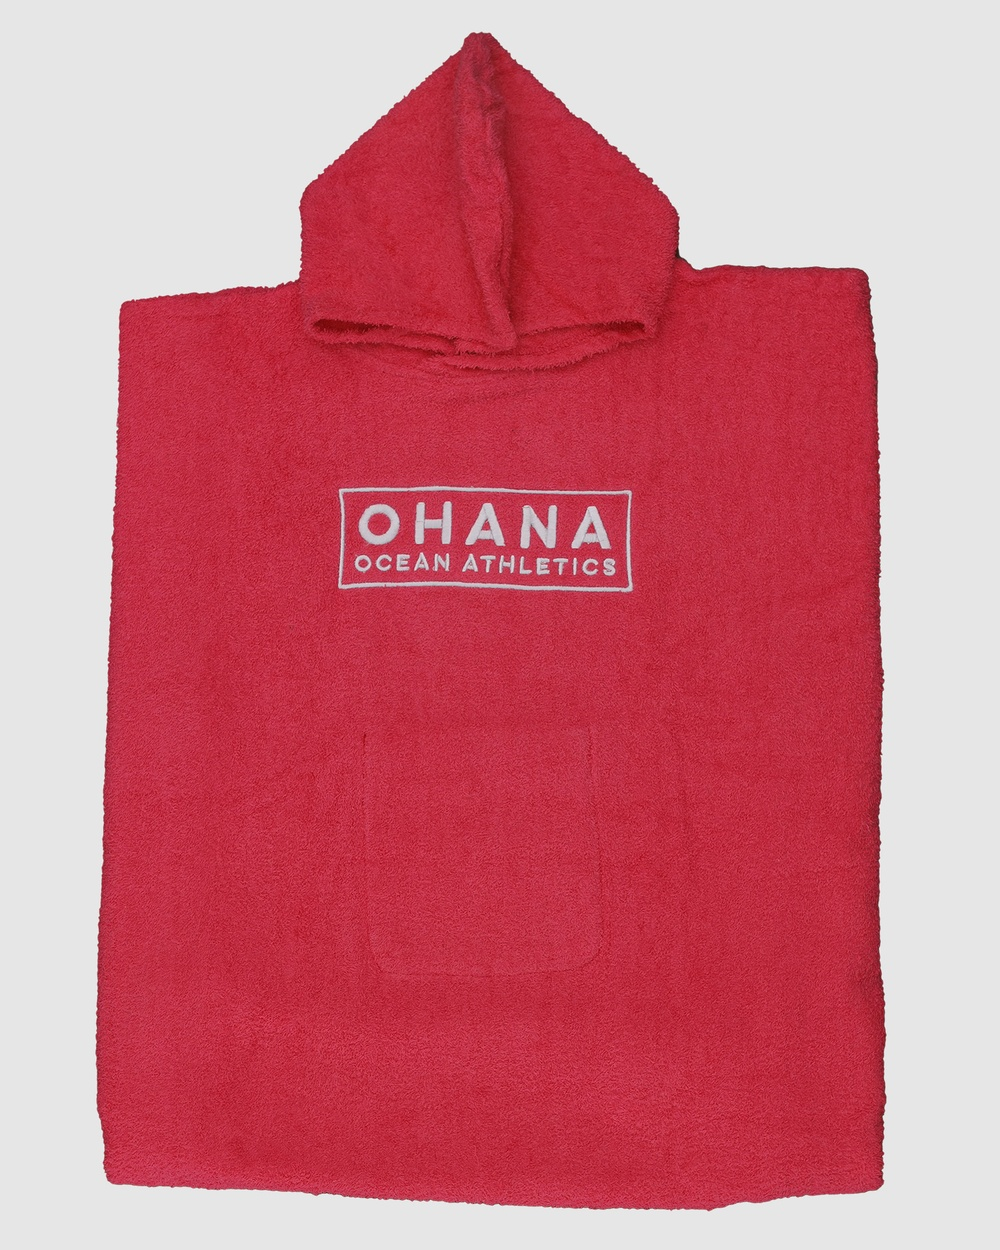 Ohana Adult Hooded Towel Tech Accessories Hot Pink Adult Hooded Towel